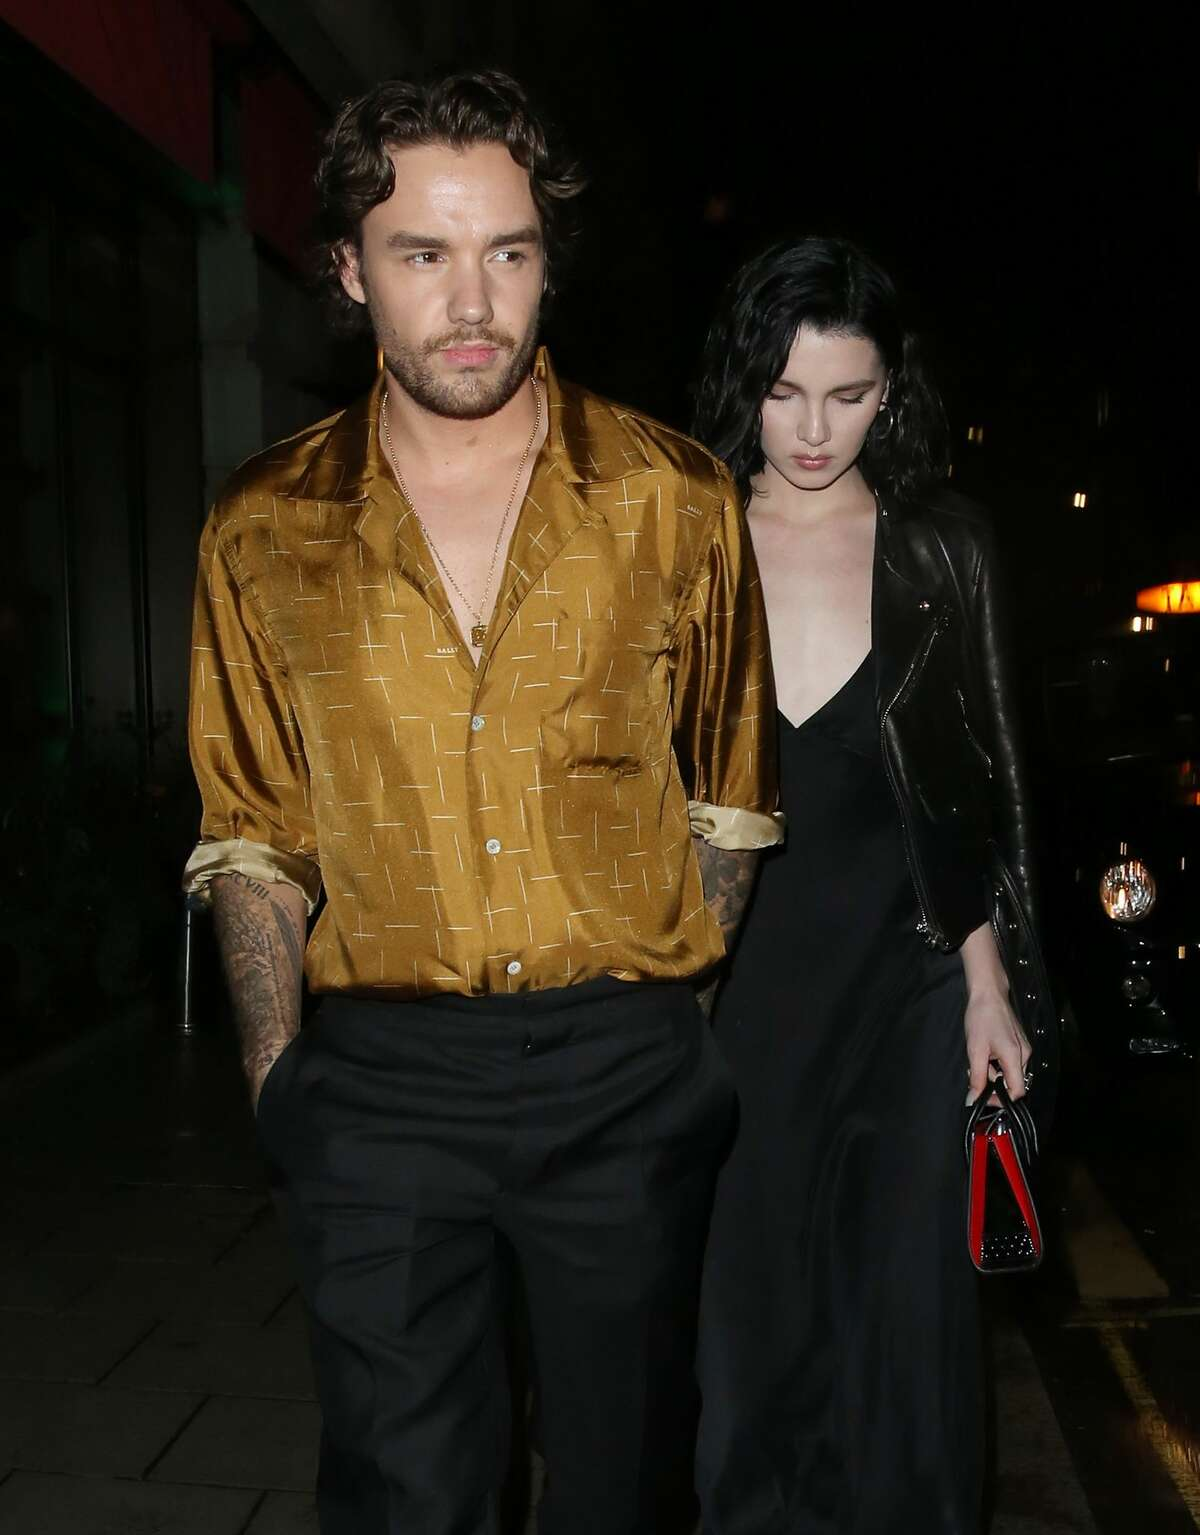 LONDON, ENGLAND - AUGUST 27: Liam Payne and Maya Henry are seen leaving Novikov restaurant on August 27, 2020 in London, England. (Photo by Dan/Will/MEGA/GC Images)